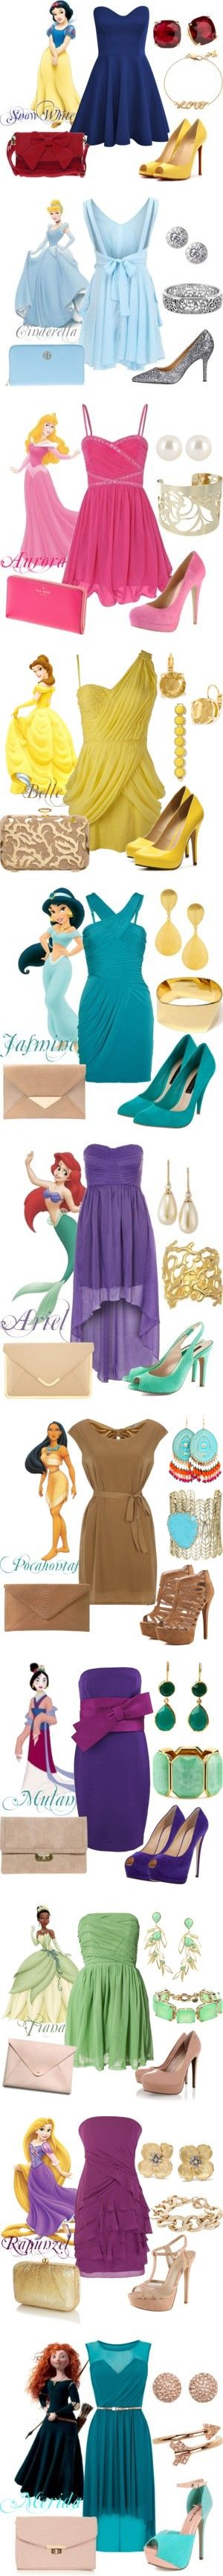 Disney Princess Prom Outfits by natihasi on Polyvore www.facebook.com/MTTMelissa